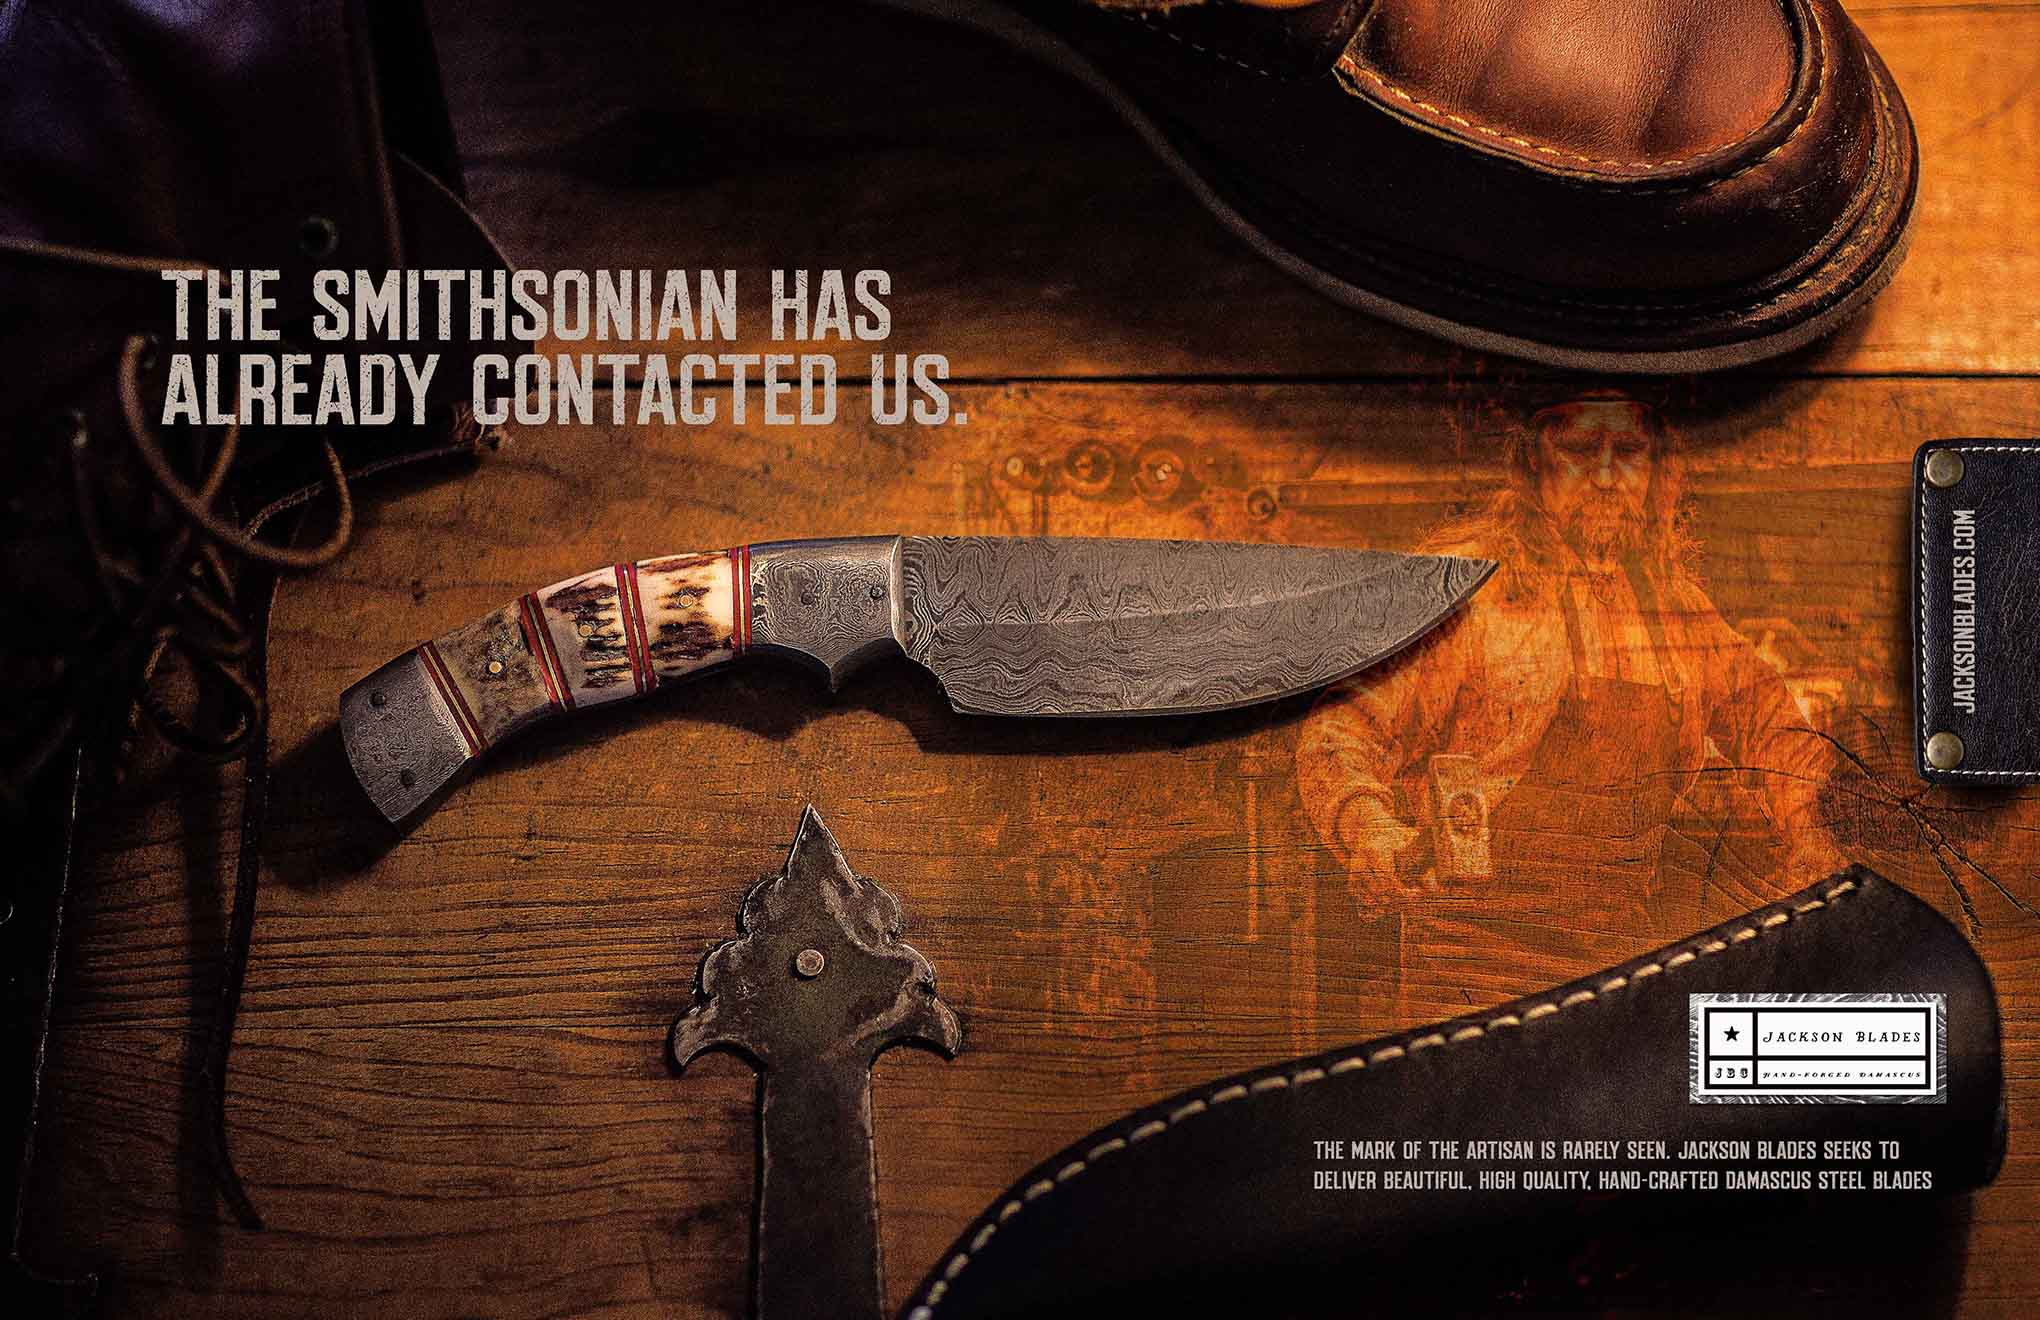 Trade ad for Jackson Knifes